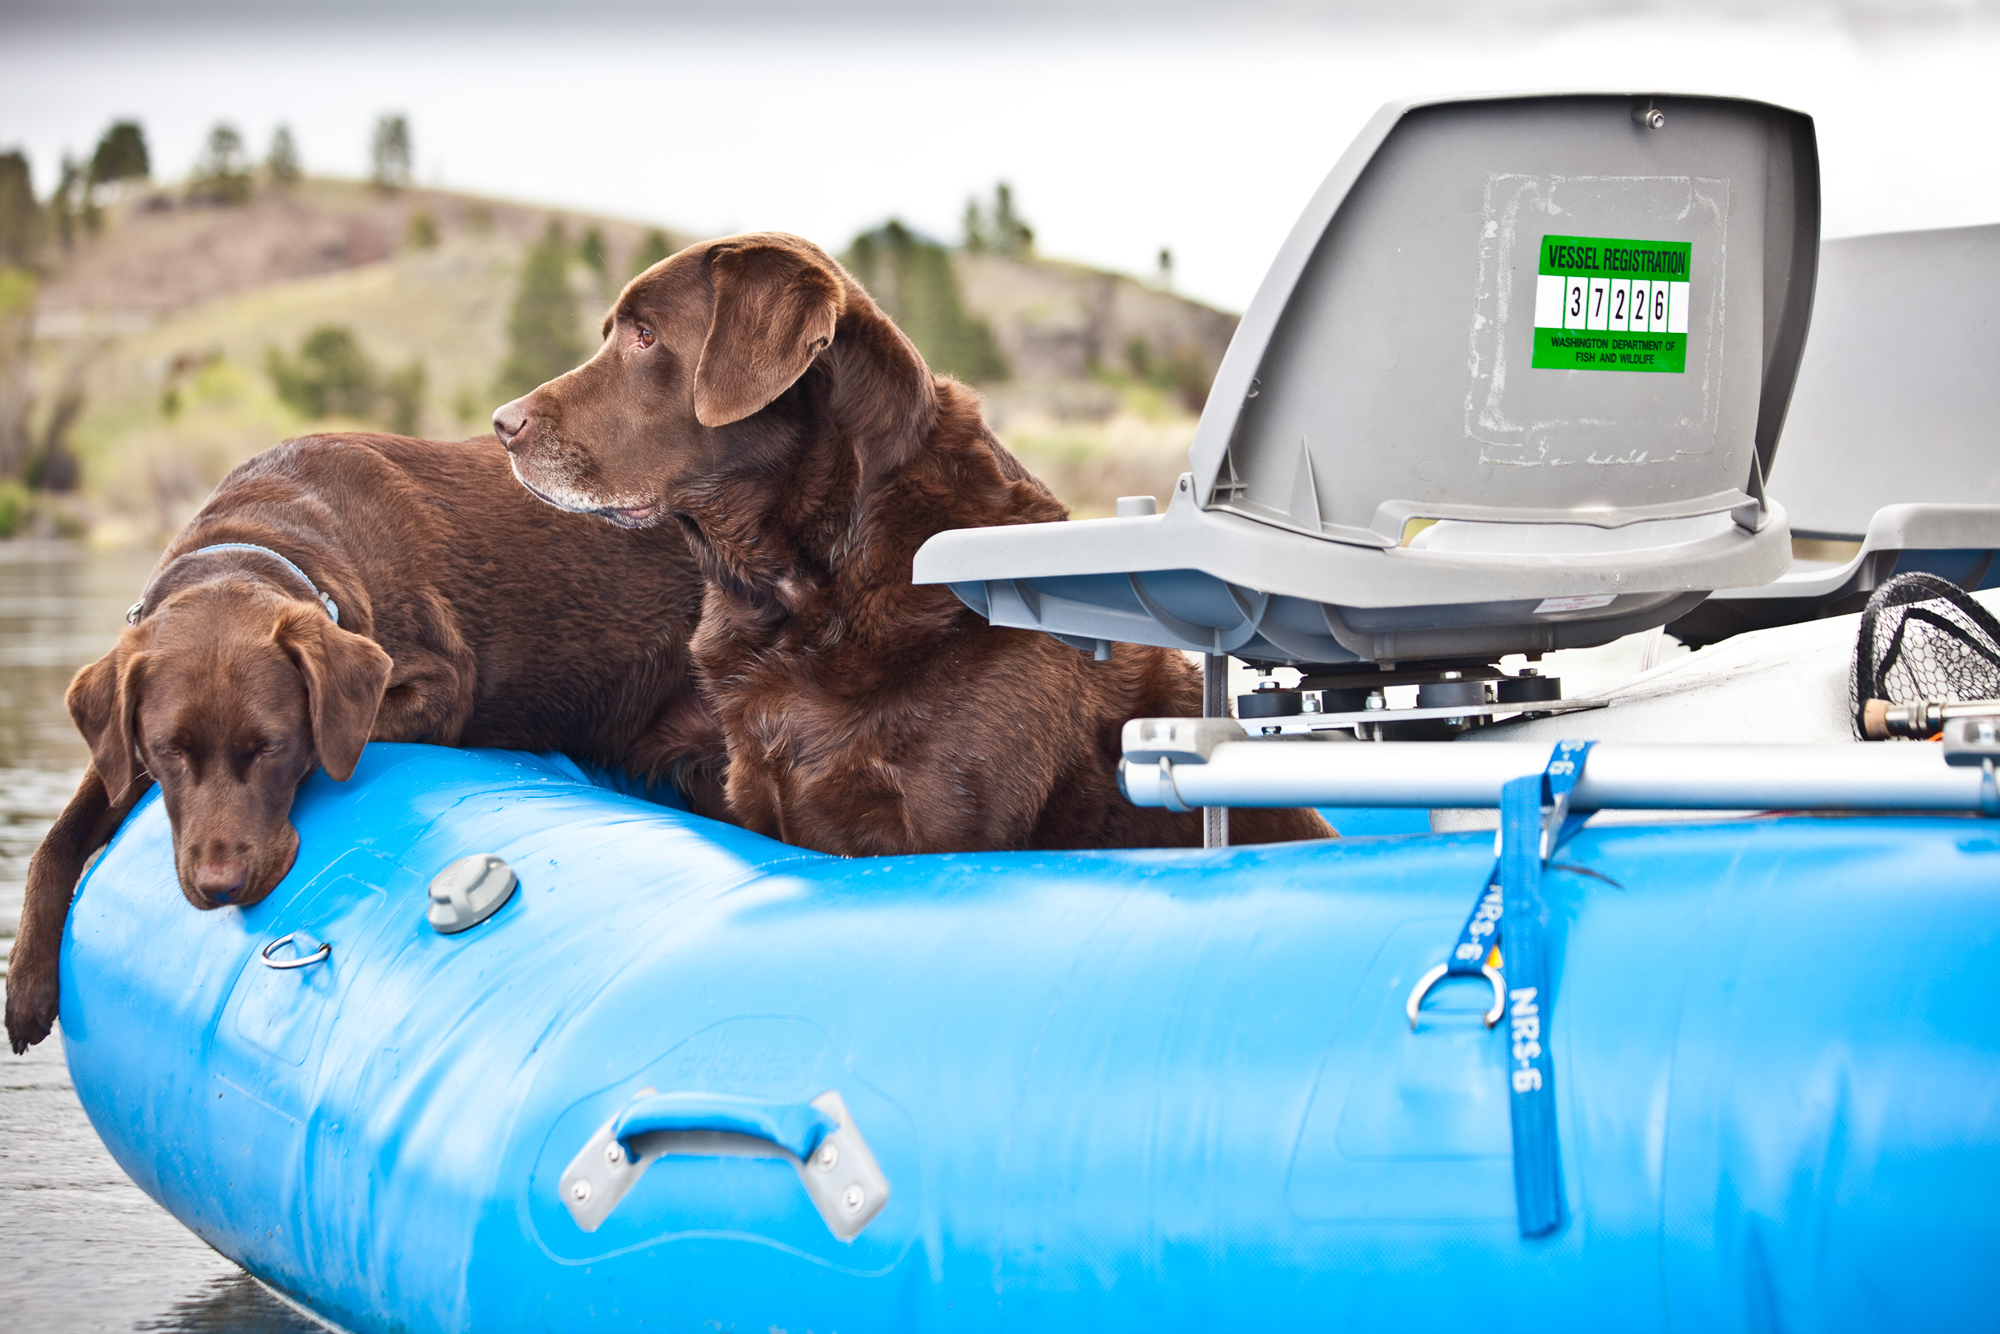 Stowaways, beware. Pate and Violet hold down the raft while their anglers wade in search of sipping trout.